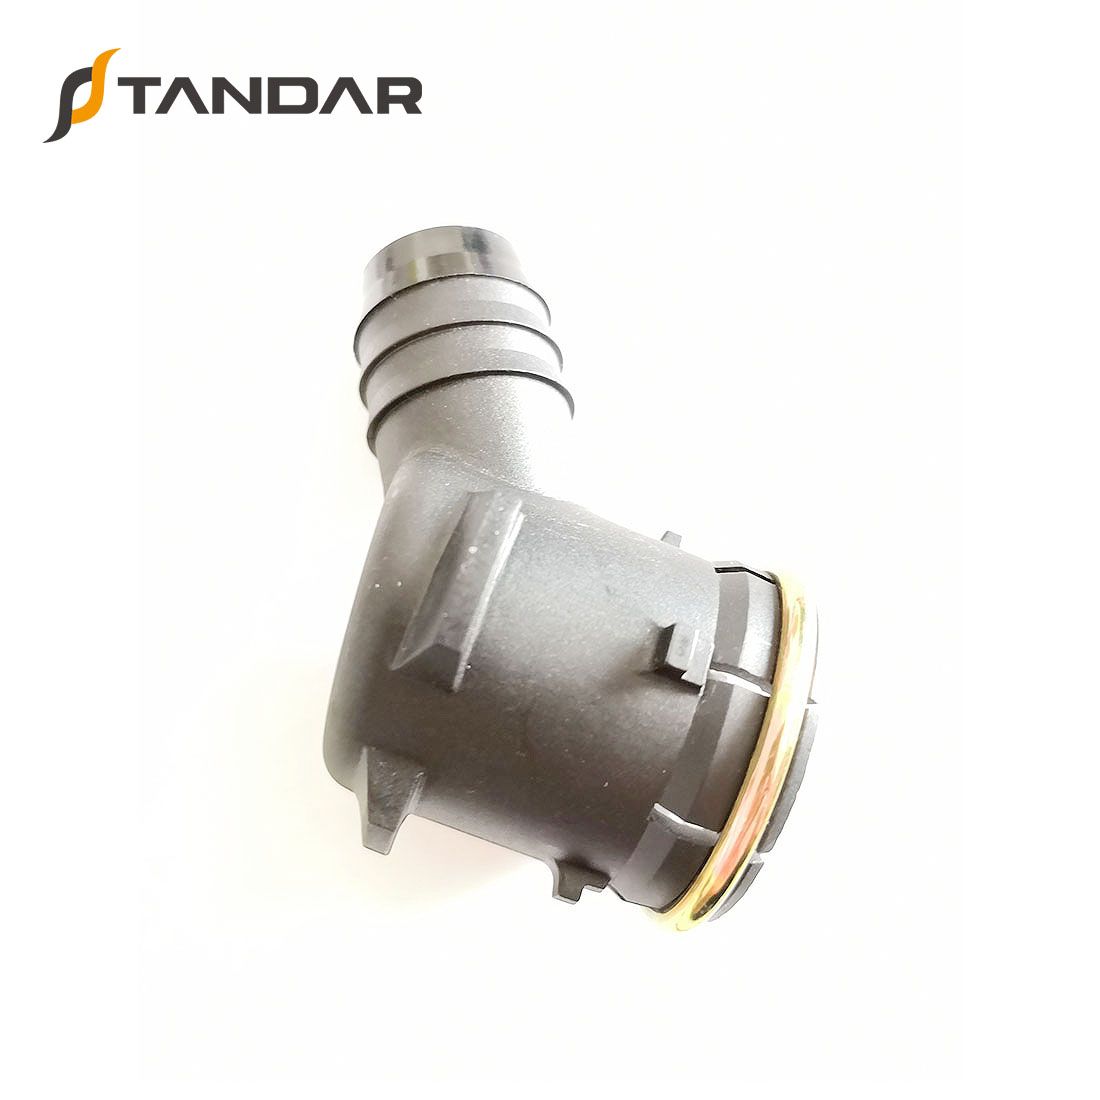 OEM 8994703144 PA air hose Connector for Scania Trucks